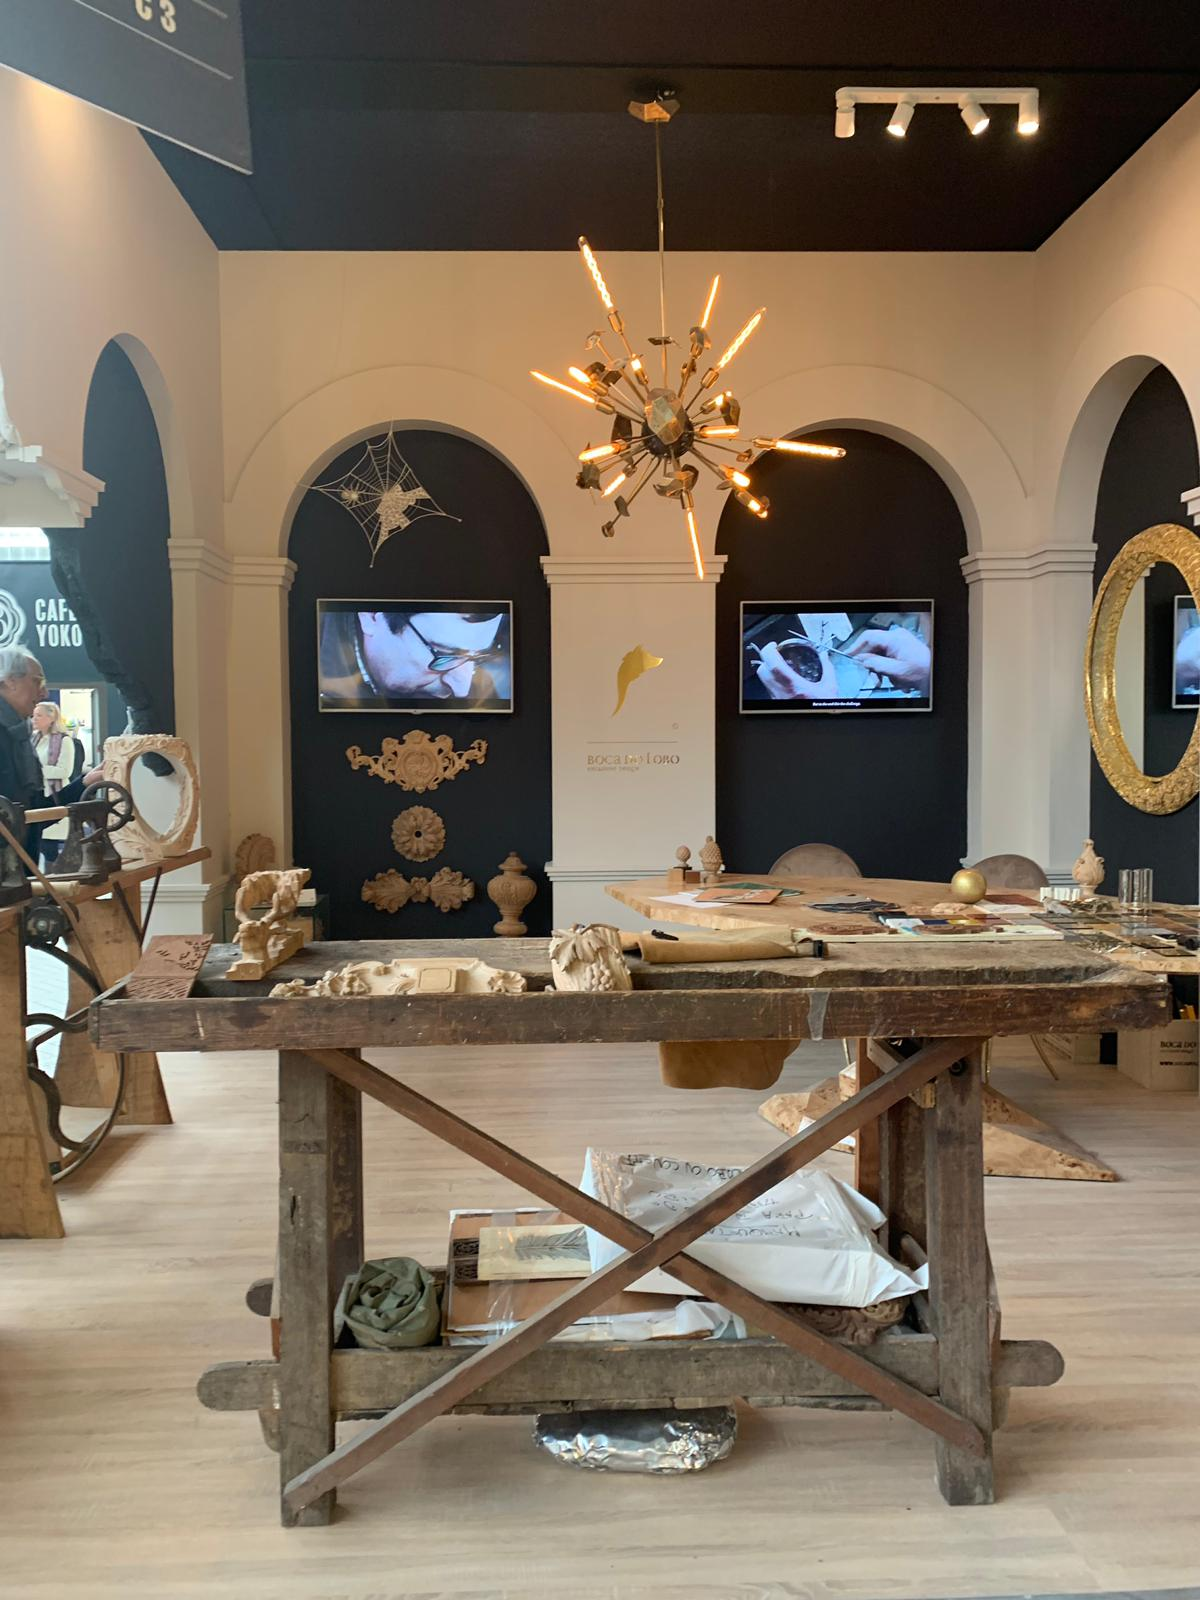 Maison et Objet 2019 – First Highlights from the First Day maison et objet 2019 Maison et Objet 2019 – First Highlights from the First Day Maison et Objet 2019     First Highlights from the First Day 10